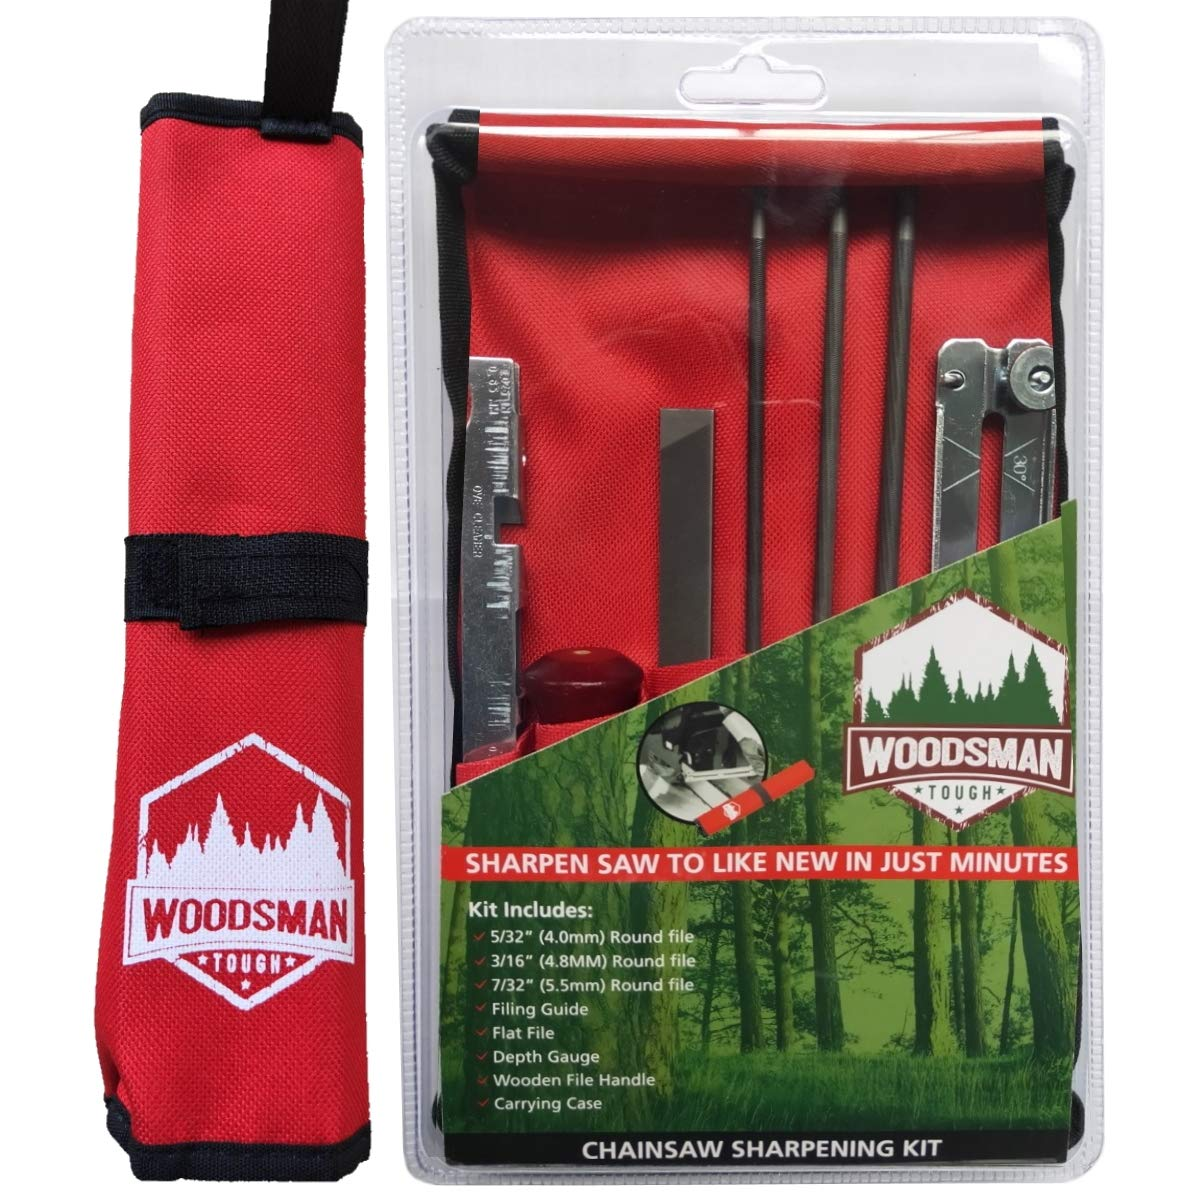 Chainsaw Sharpener File Kit - Includes Flat, 5/32, 3/16, 7/32 Inch Round Files, Depth Gauge Tool, Filing Guide, Wood Handle & Bright Red Pouch - for Sharpening Chain Saw Blades - 8 Piece Combo Set by Woodsman Tough